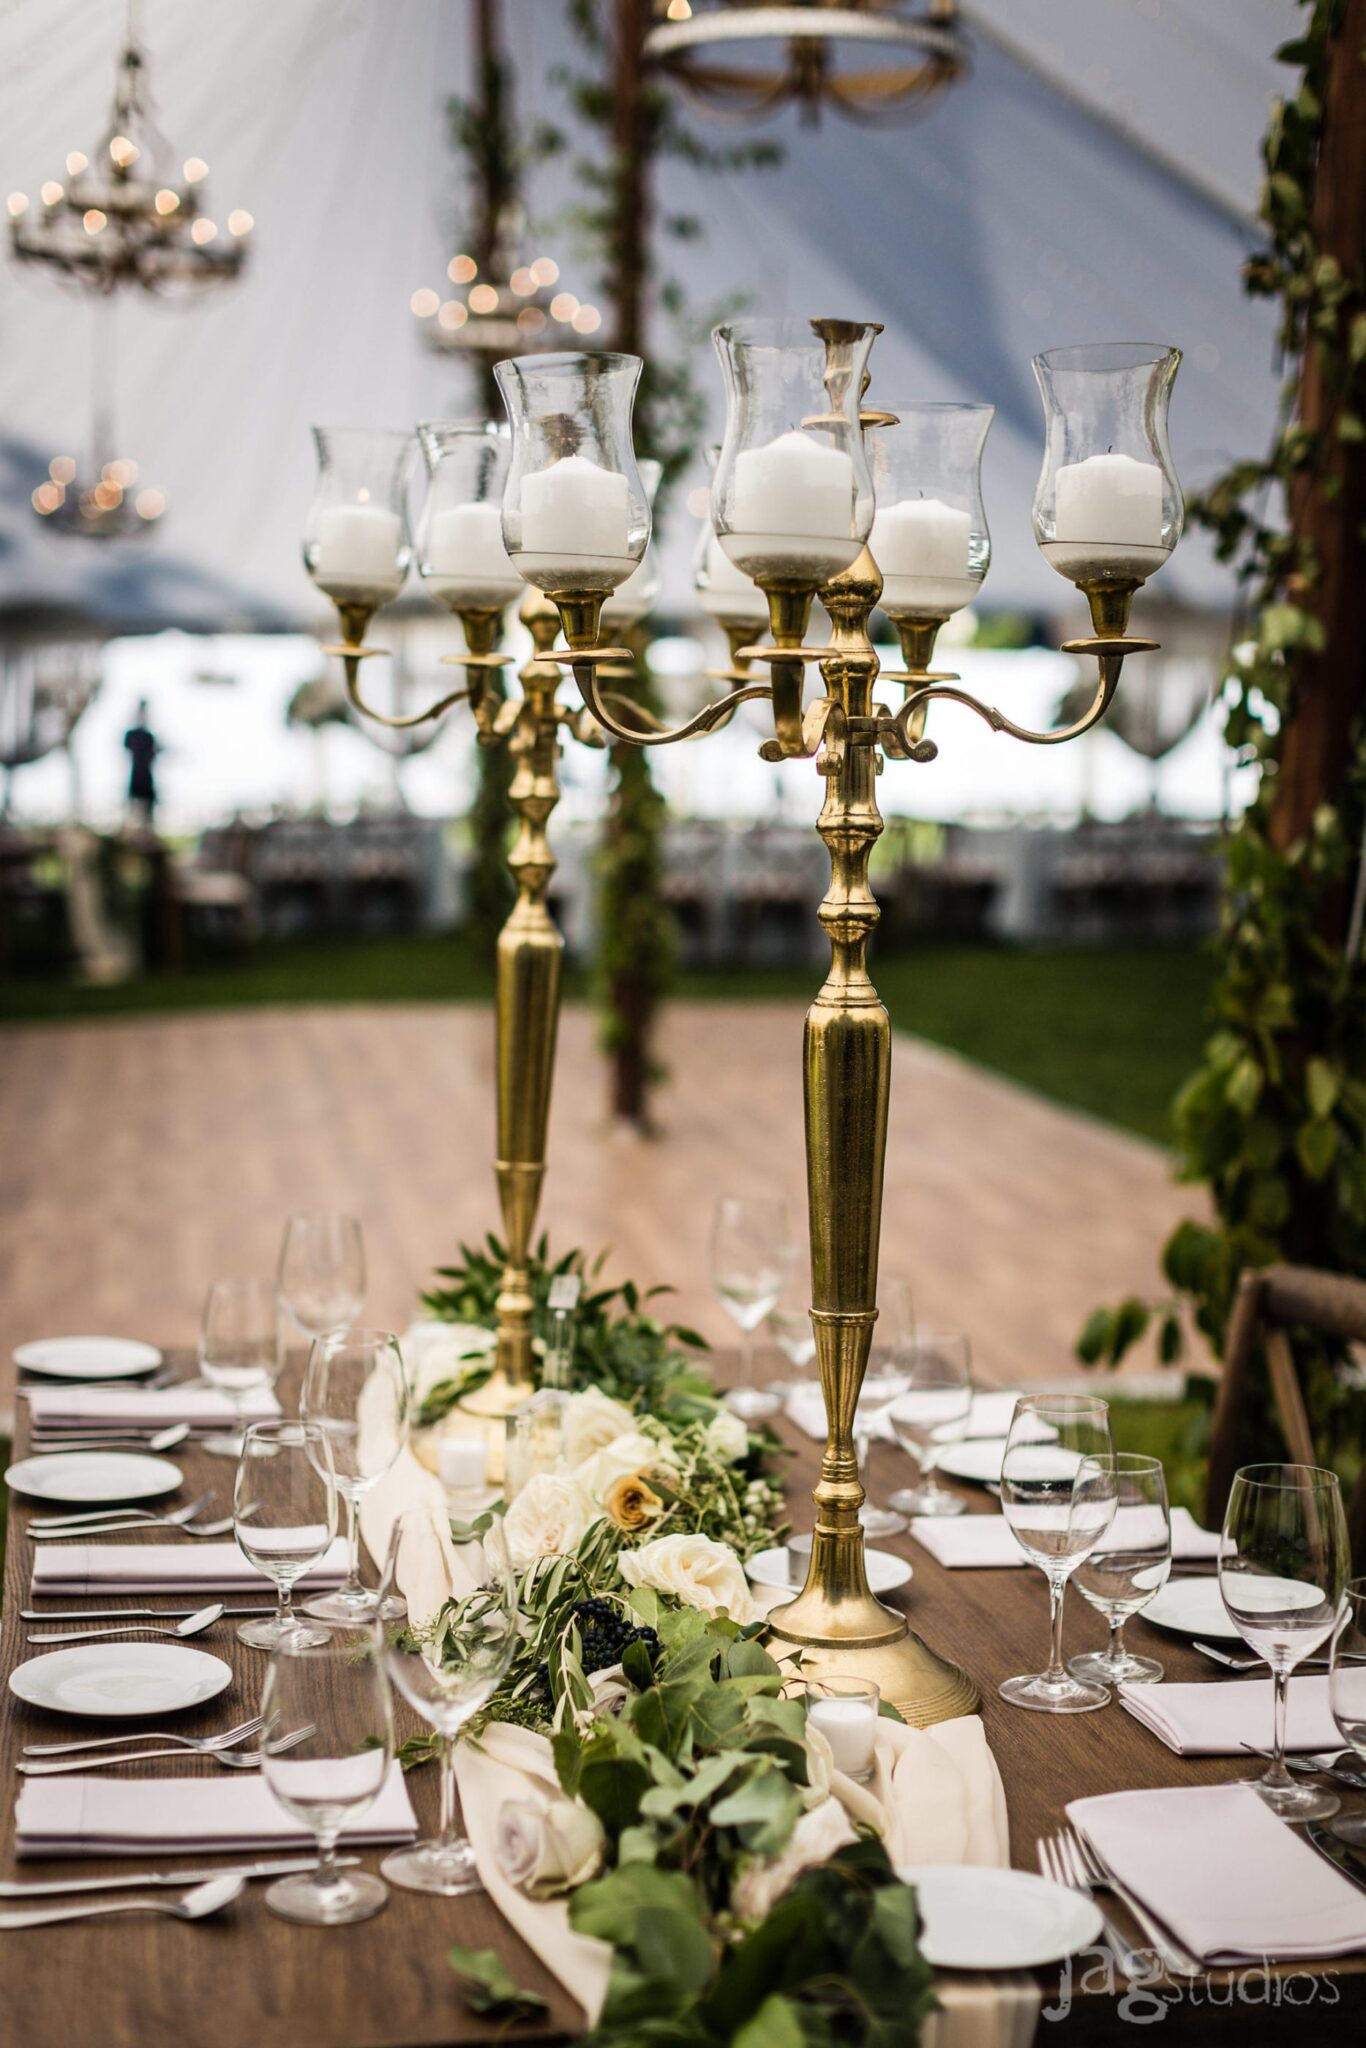 A Midnight Summer Dream gold chandeliers luxury New England Wedding Jaclyn Watson Events